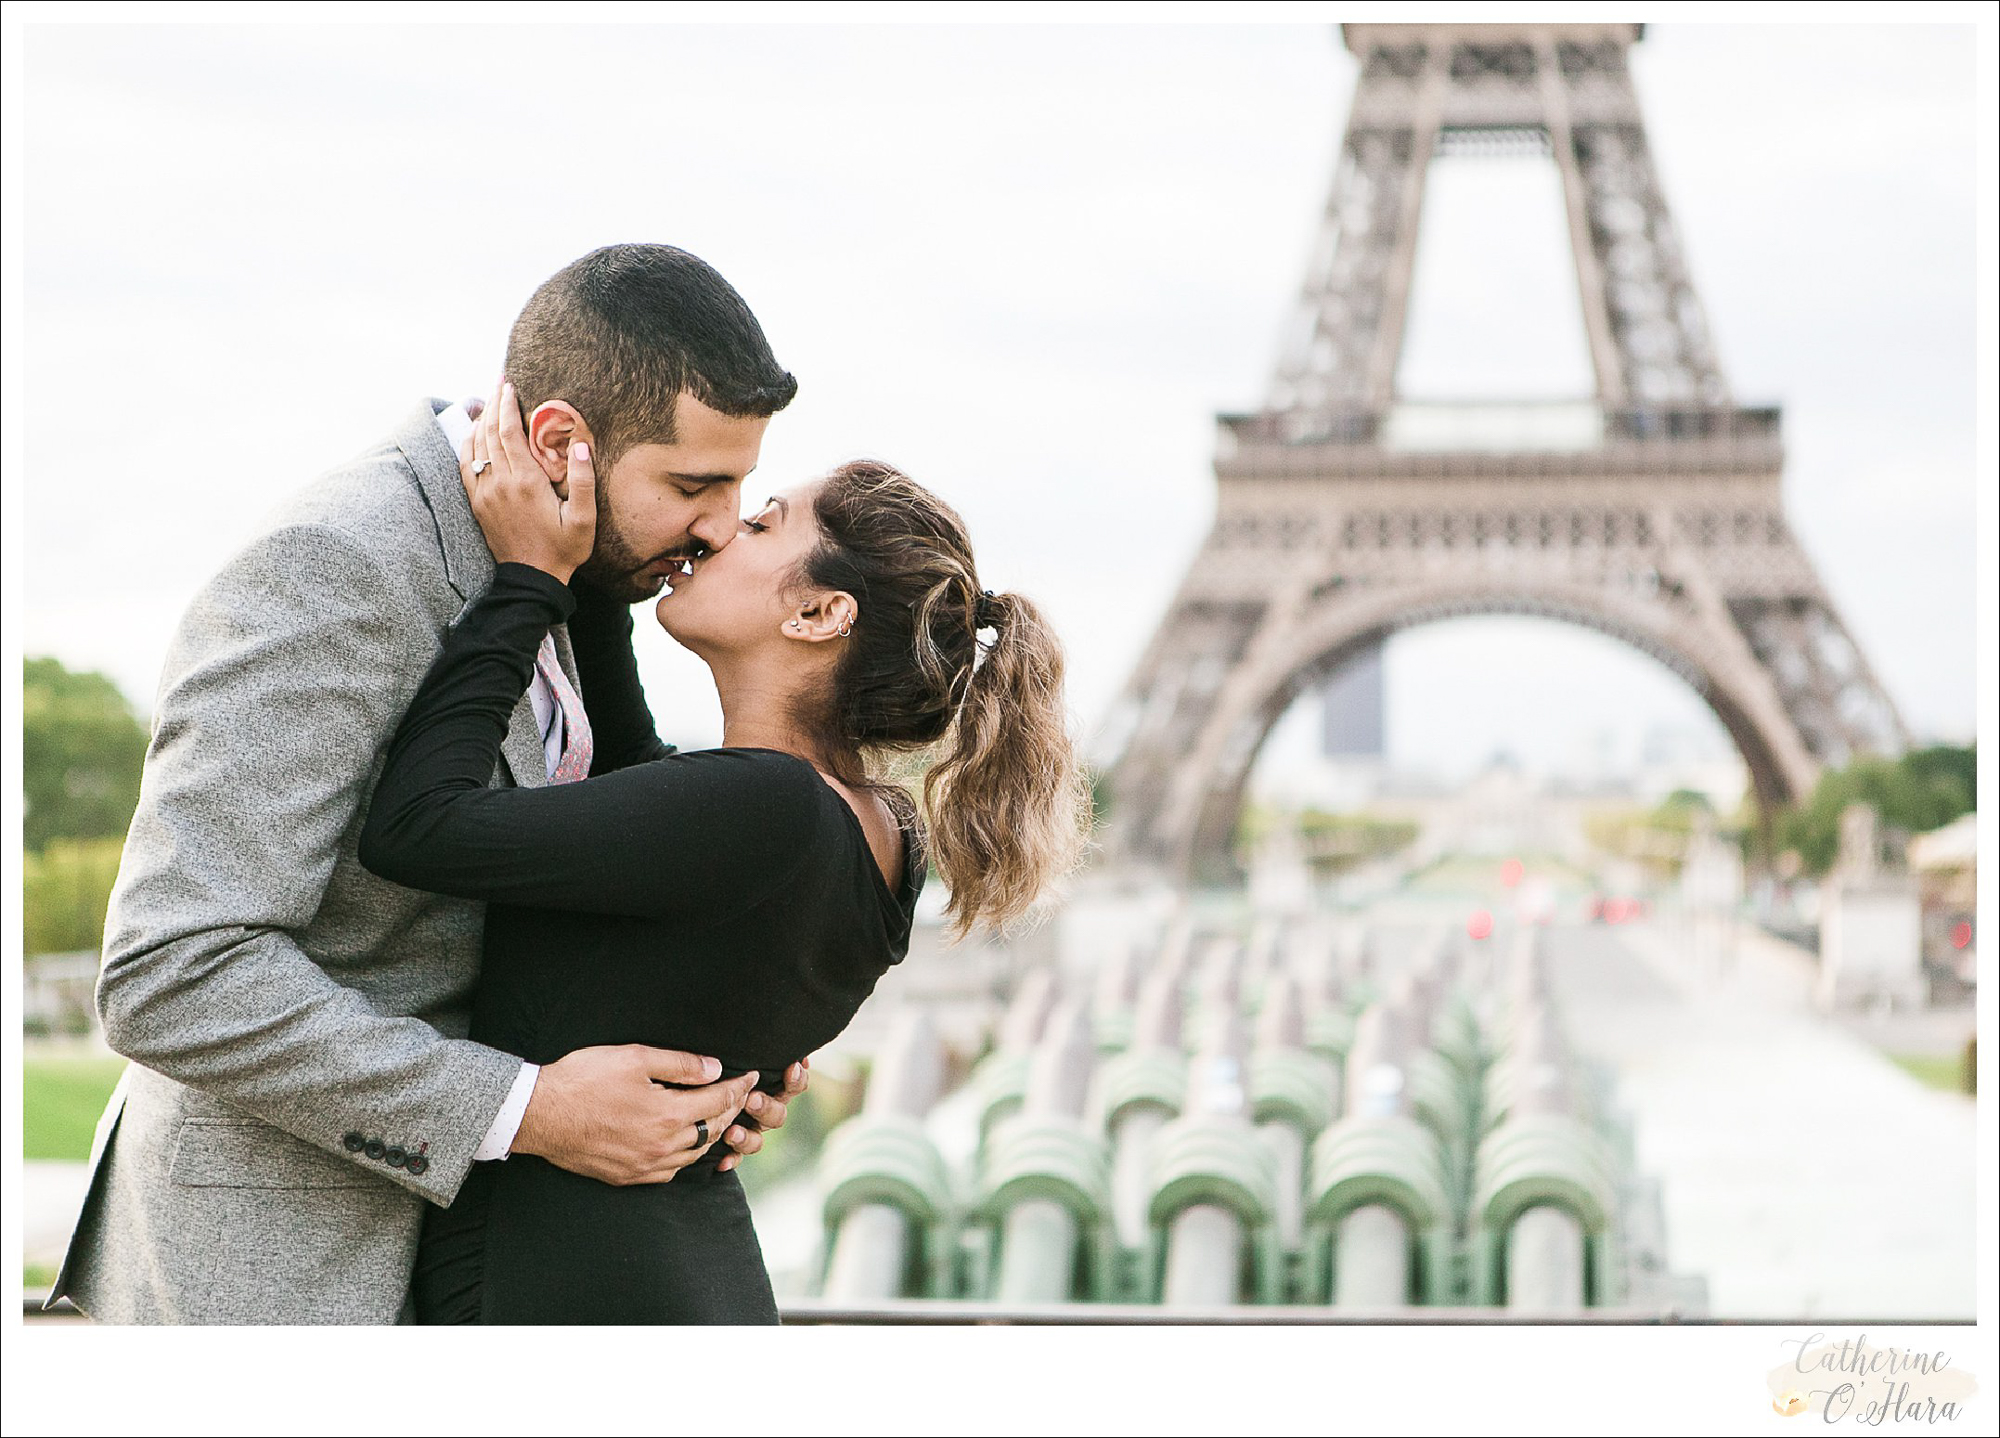 surprise proposal engagement photographer paris france-39.jpg